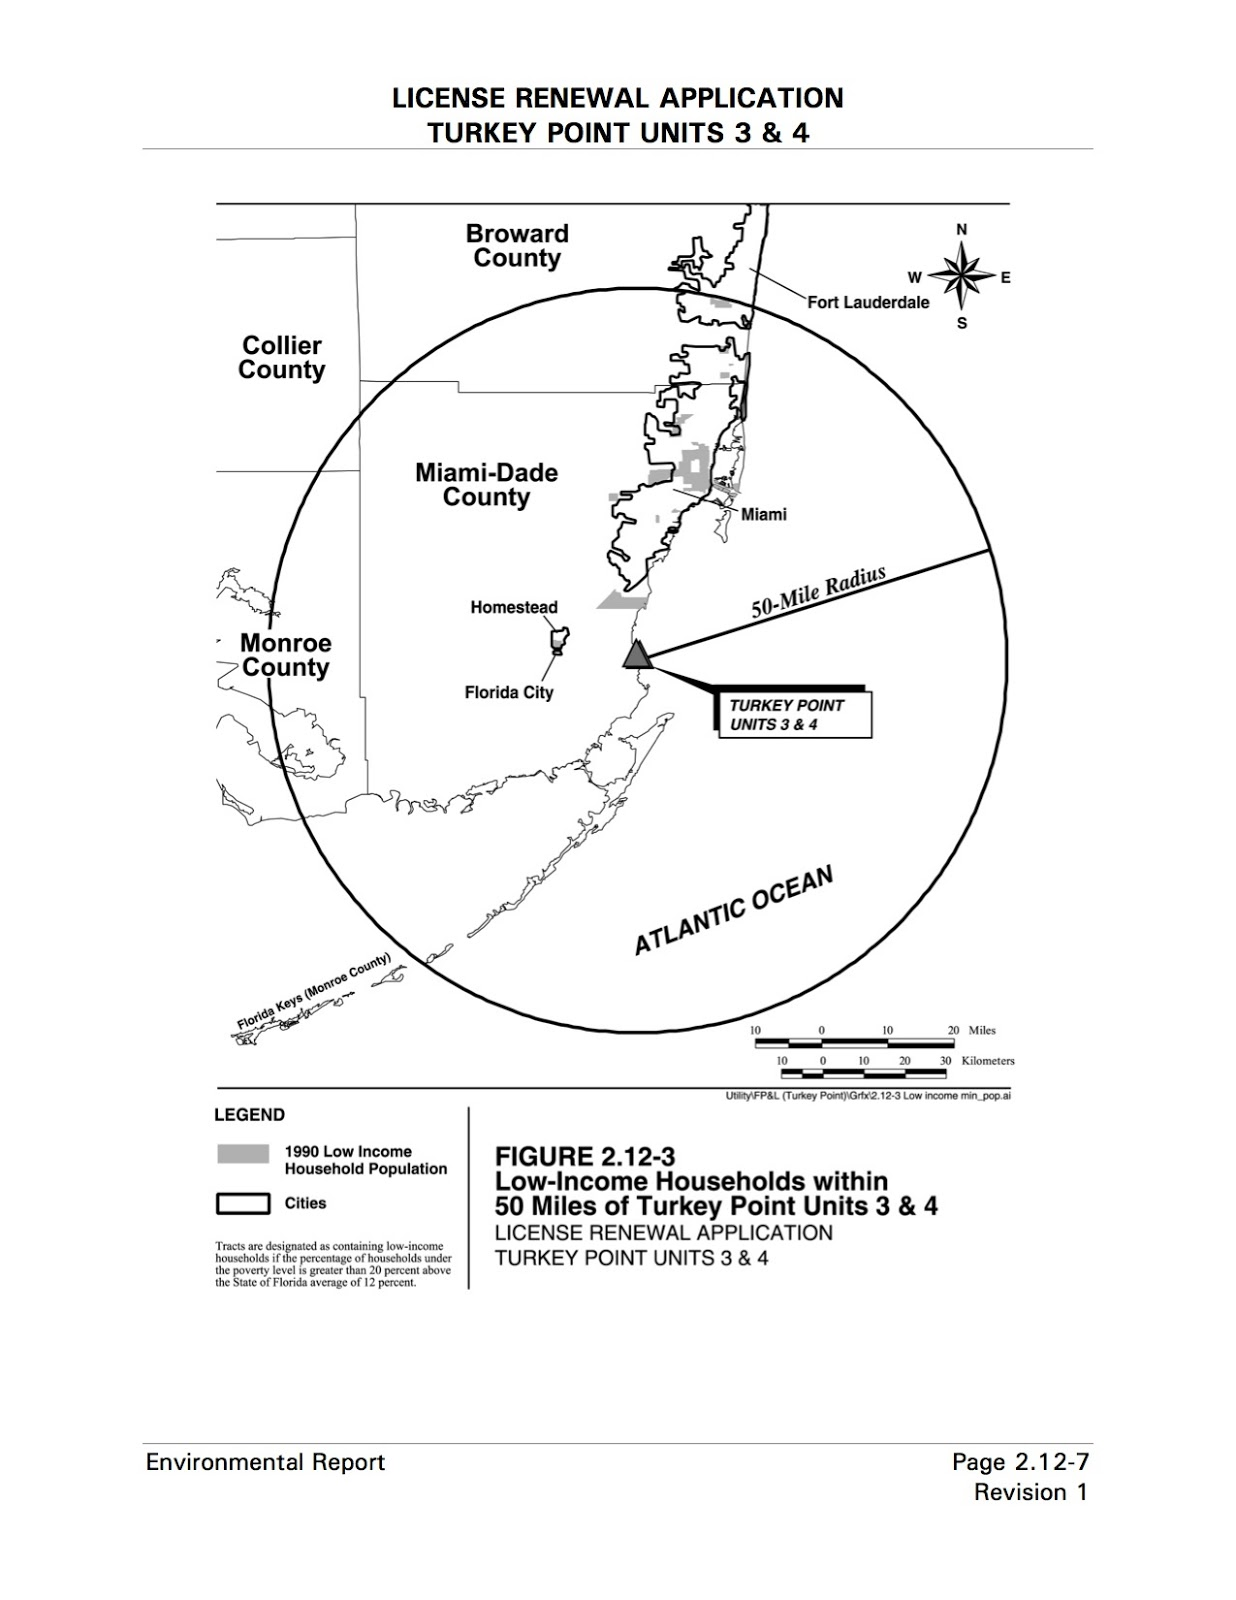 plant specific actions in response to the japan nuclear accident at turkey point unit 3